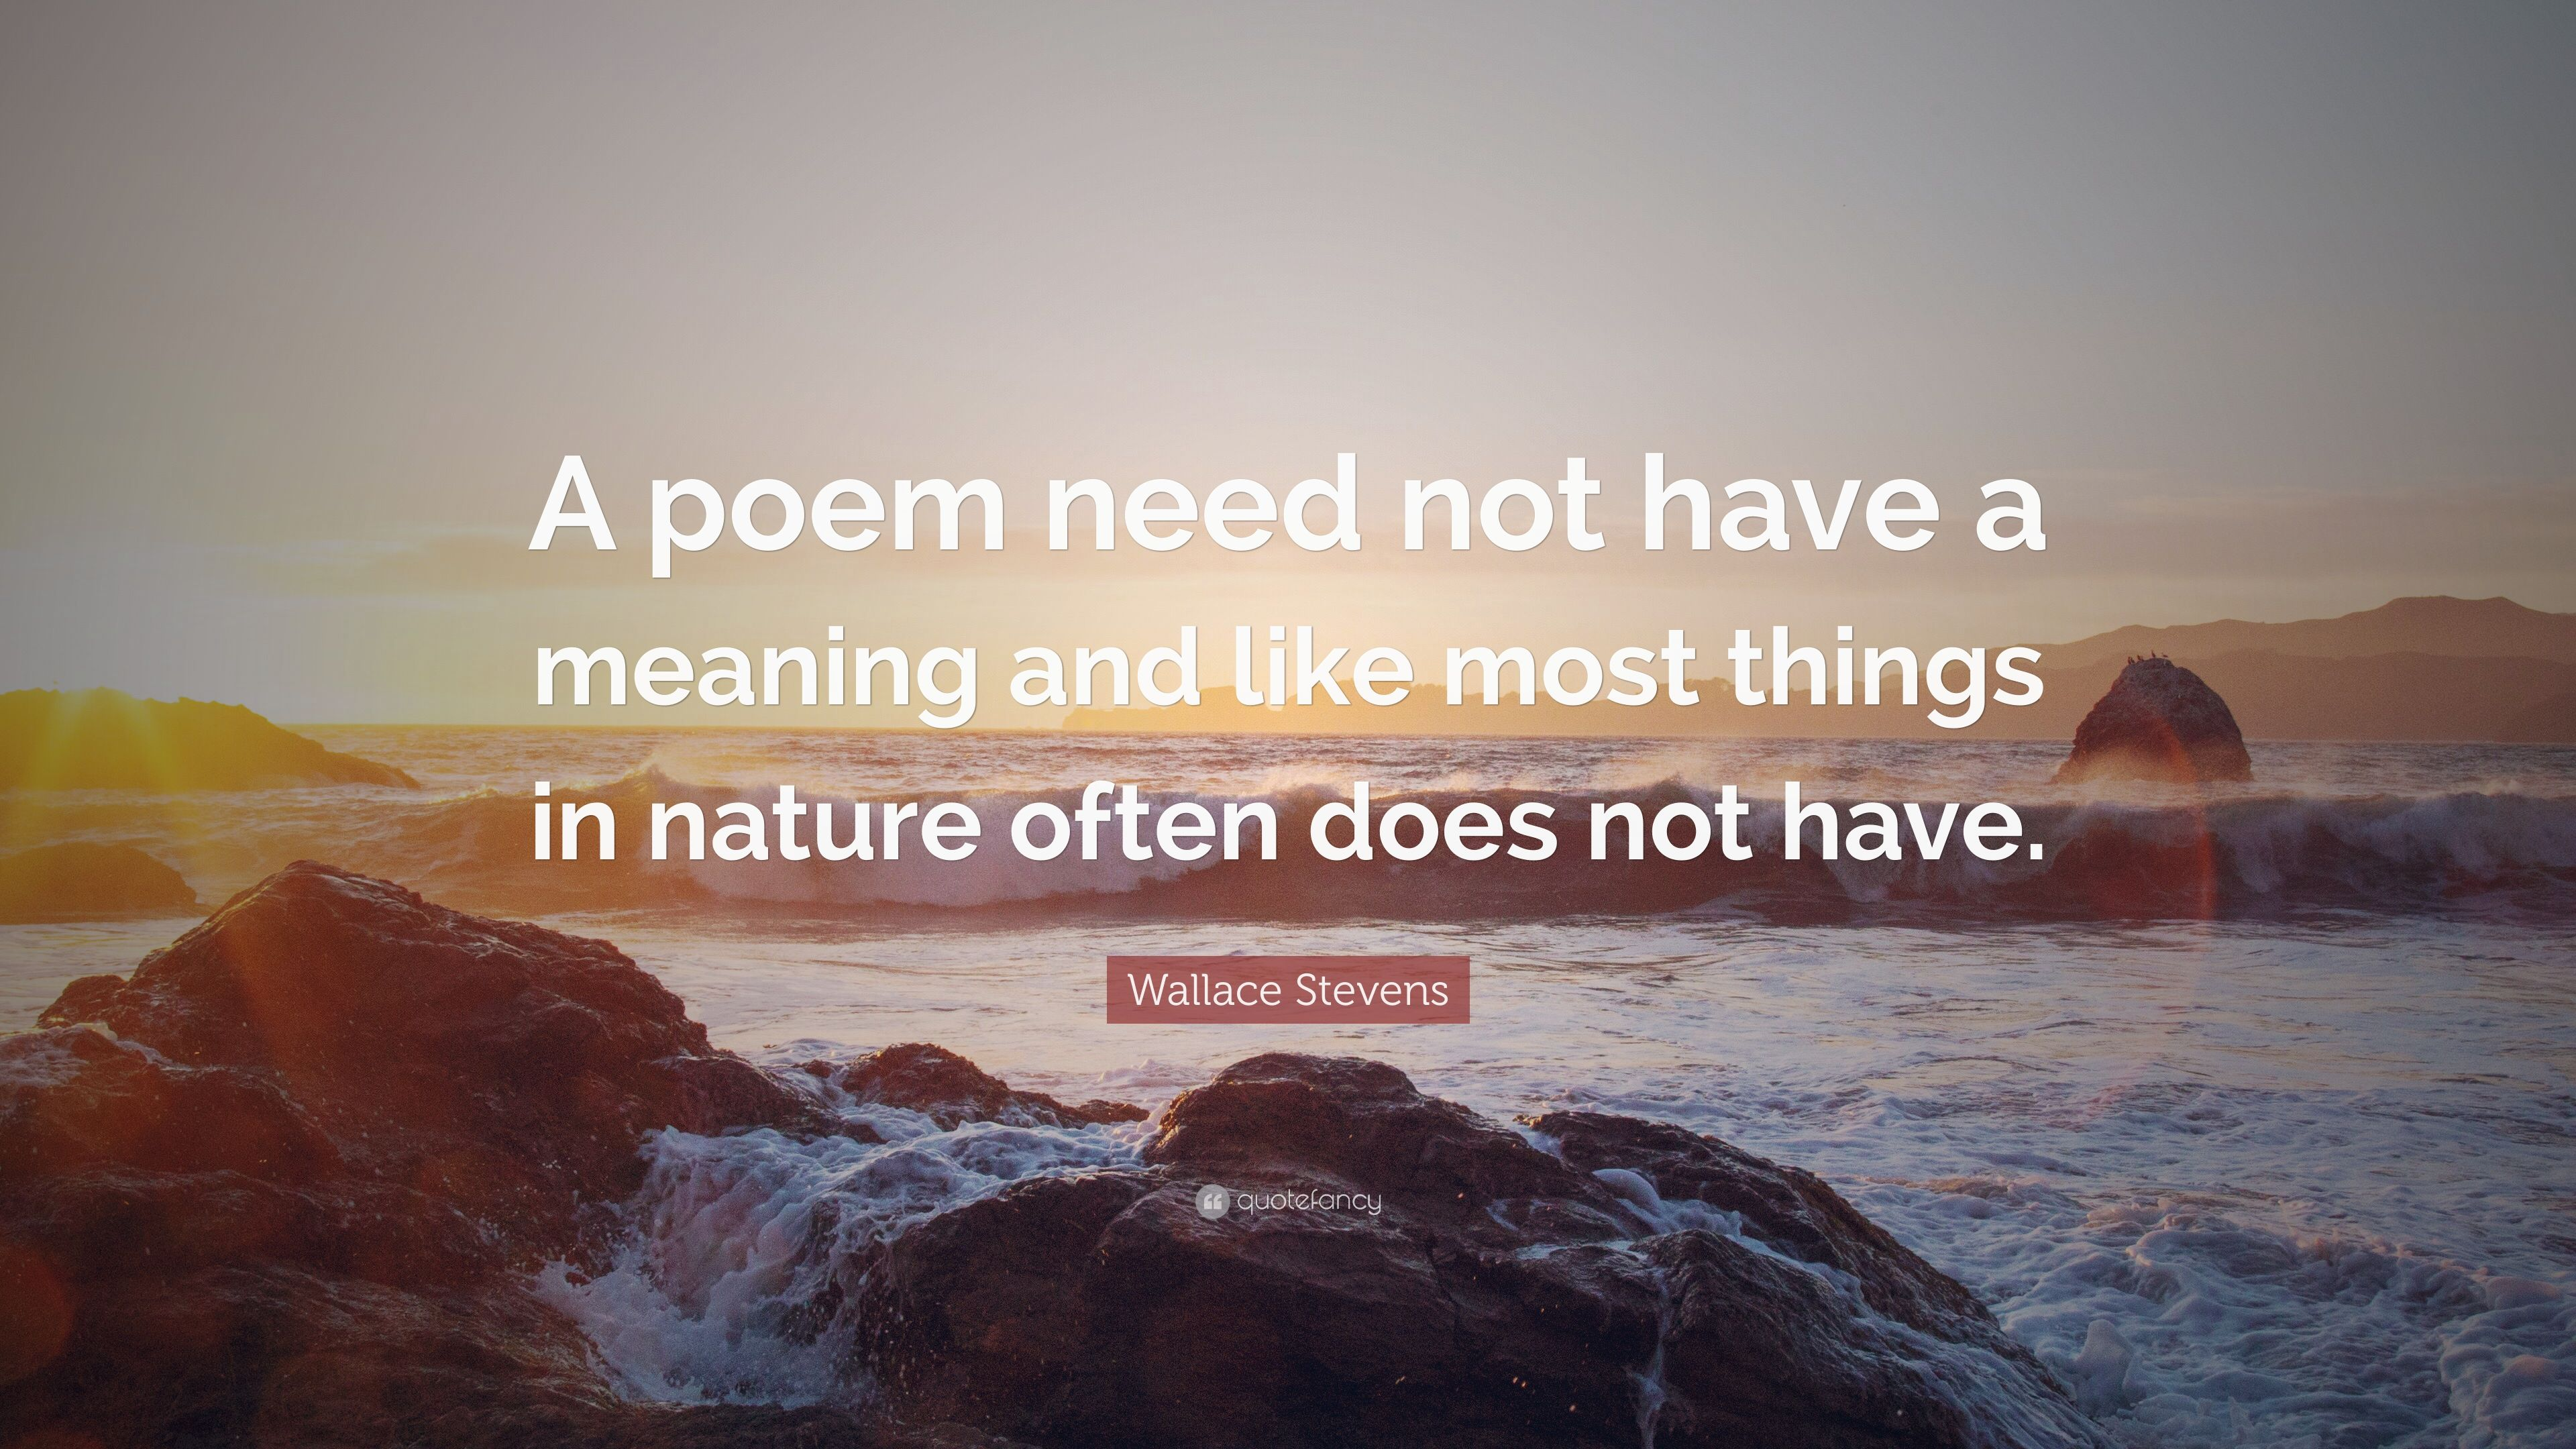 Wallace Stevens Quote A Poem Need Not Have A Meaning And Like Most